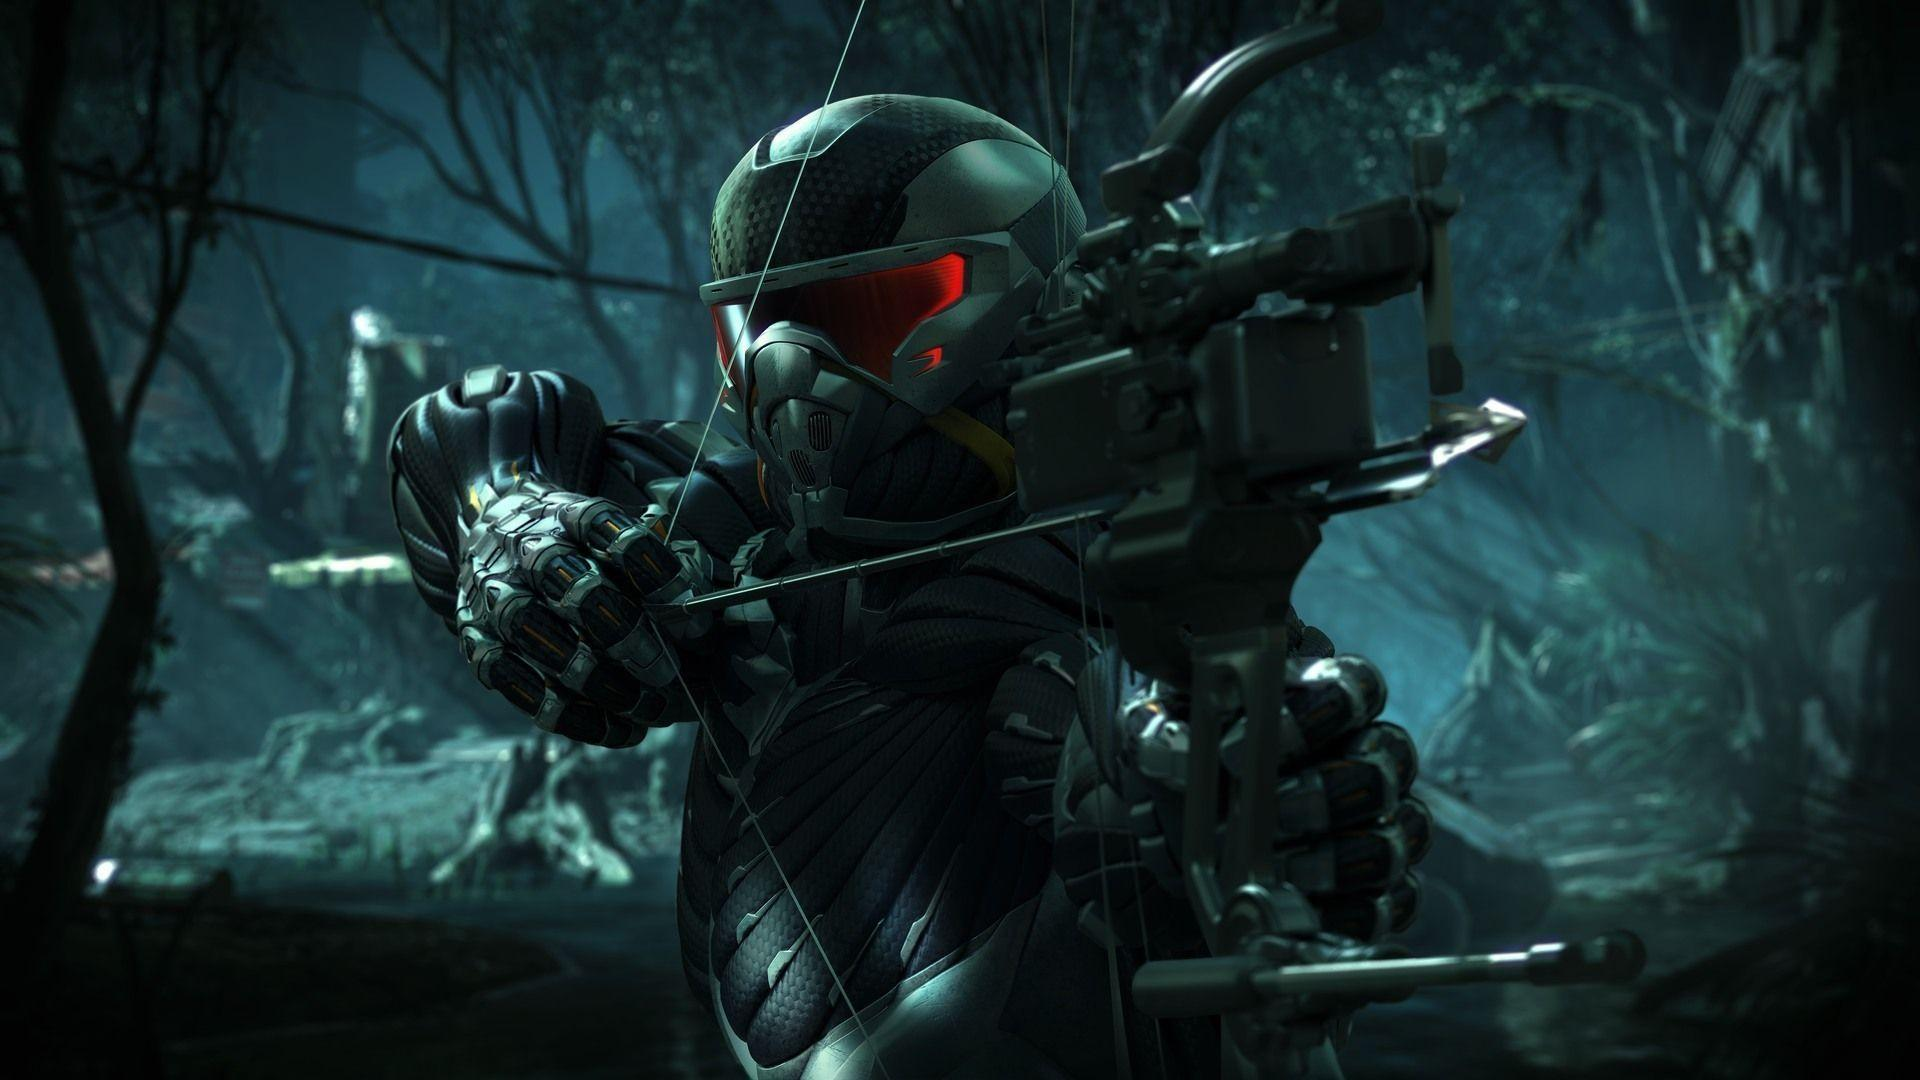 crysis 3 wallpapers bow